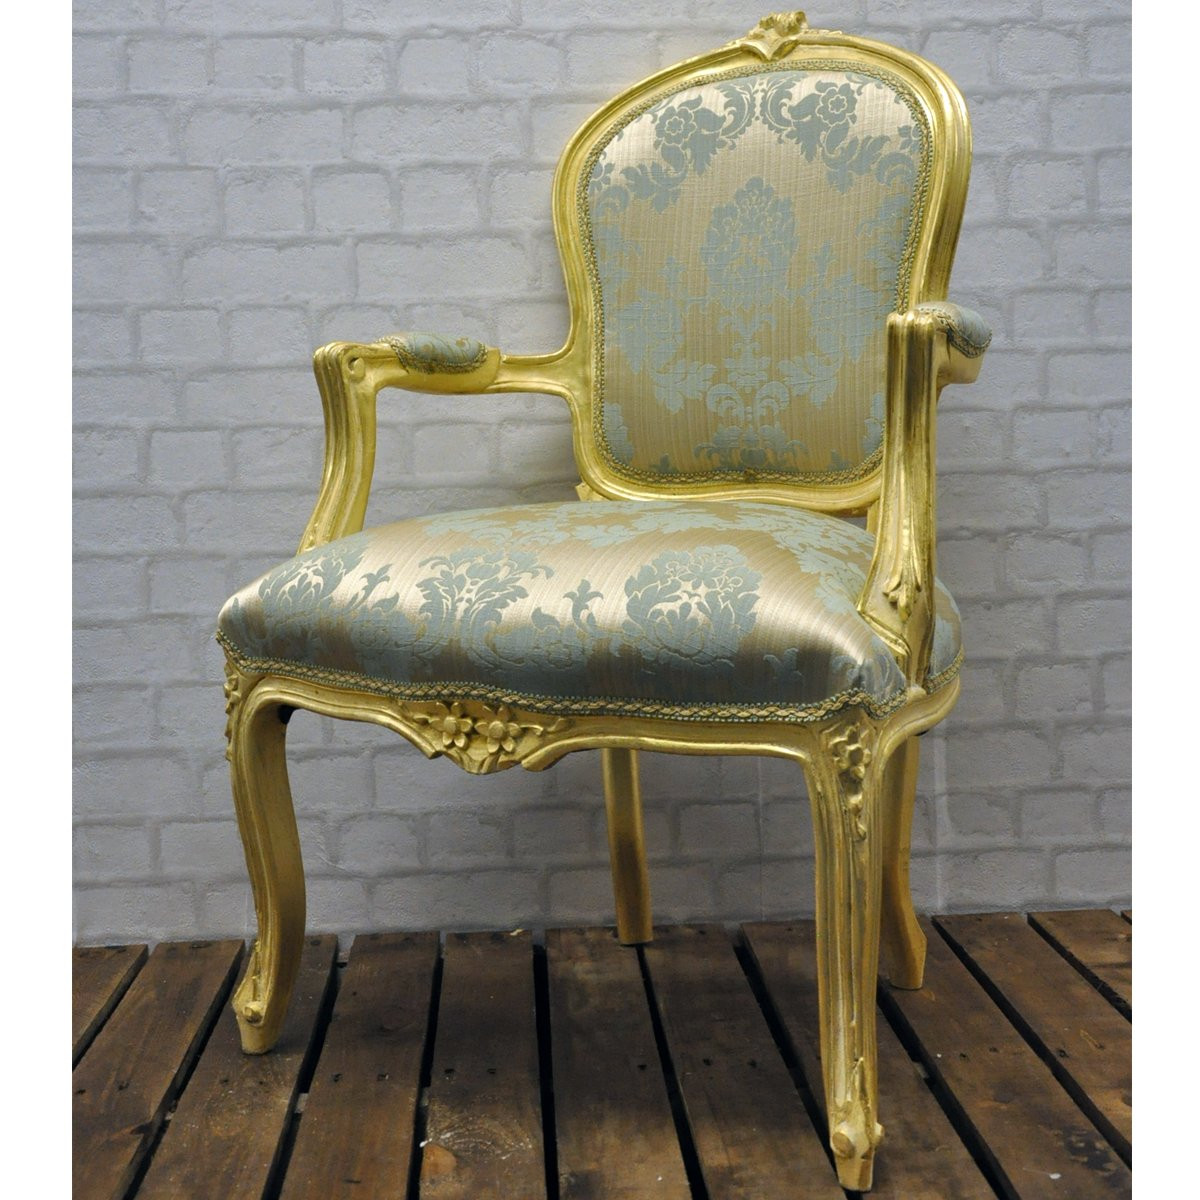 Antique upholstered chair styles - Vintage French Style Antique Finish Gold Frame Duck Egg Damask Louis Bedroom Arm Chair Upholstered In Uk Amazon Co Uk Kitchen Home